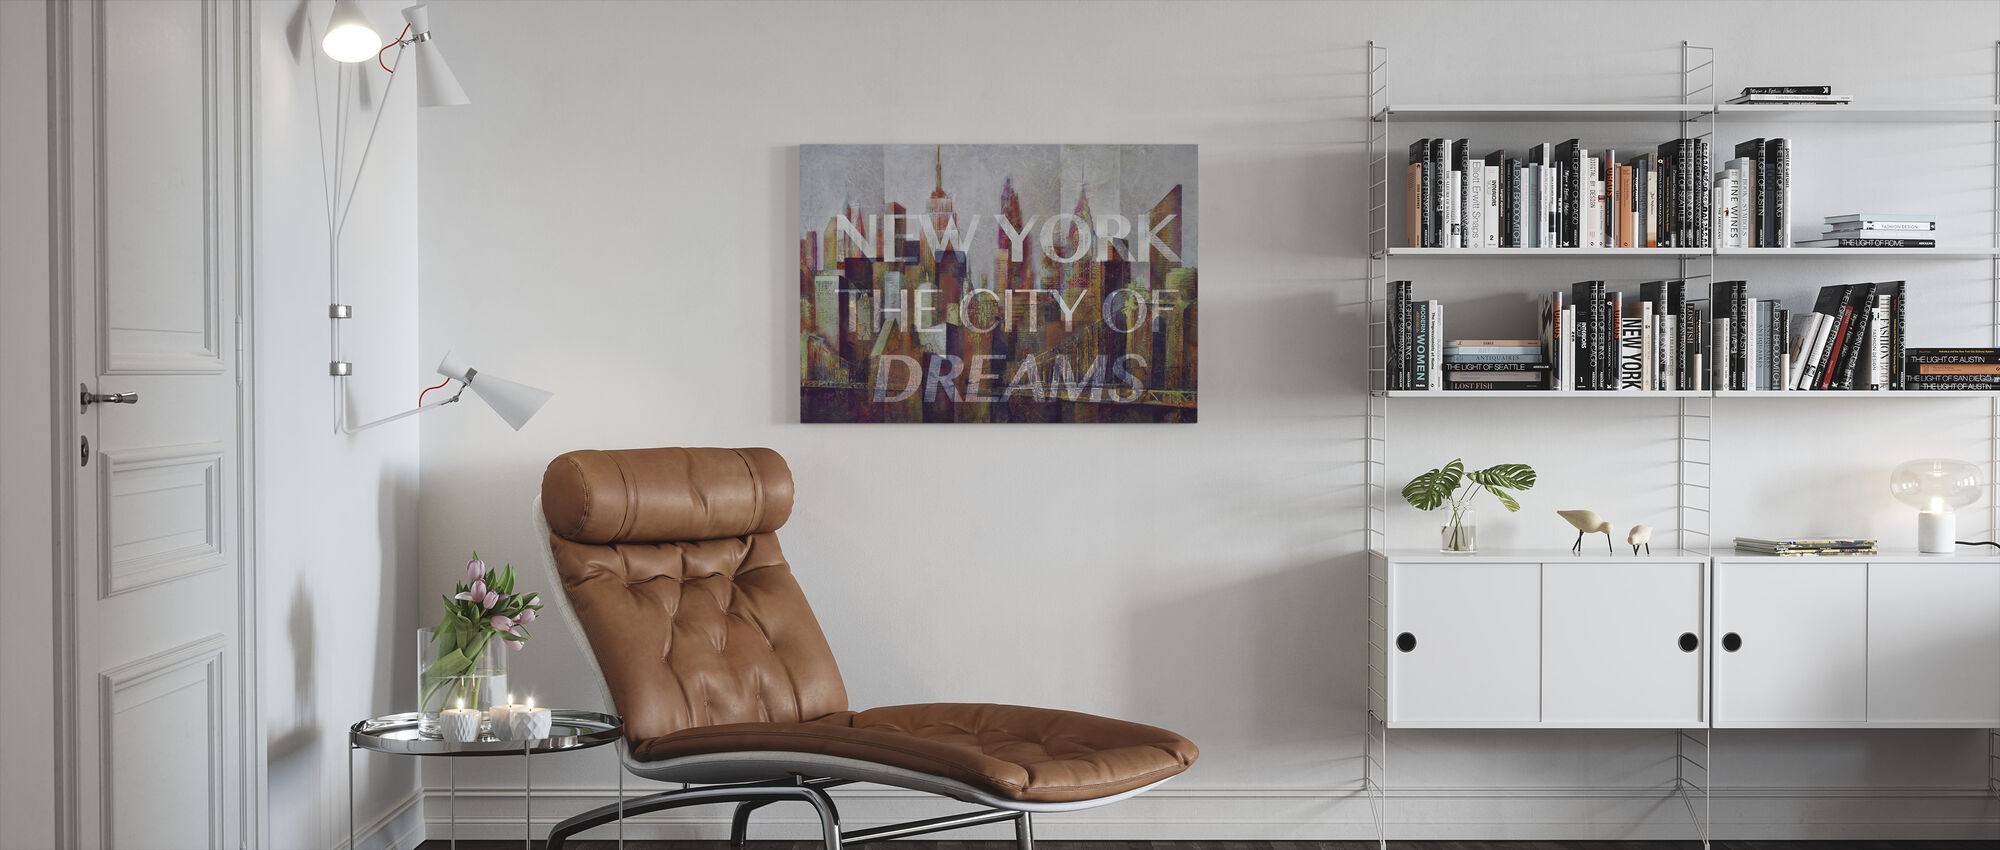 New York - City of Dreams - Canvas print - Living Room